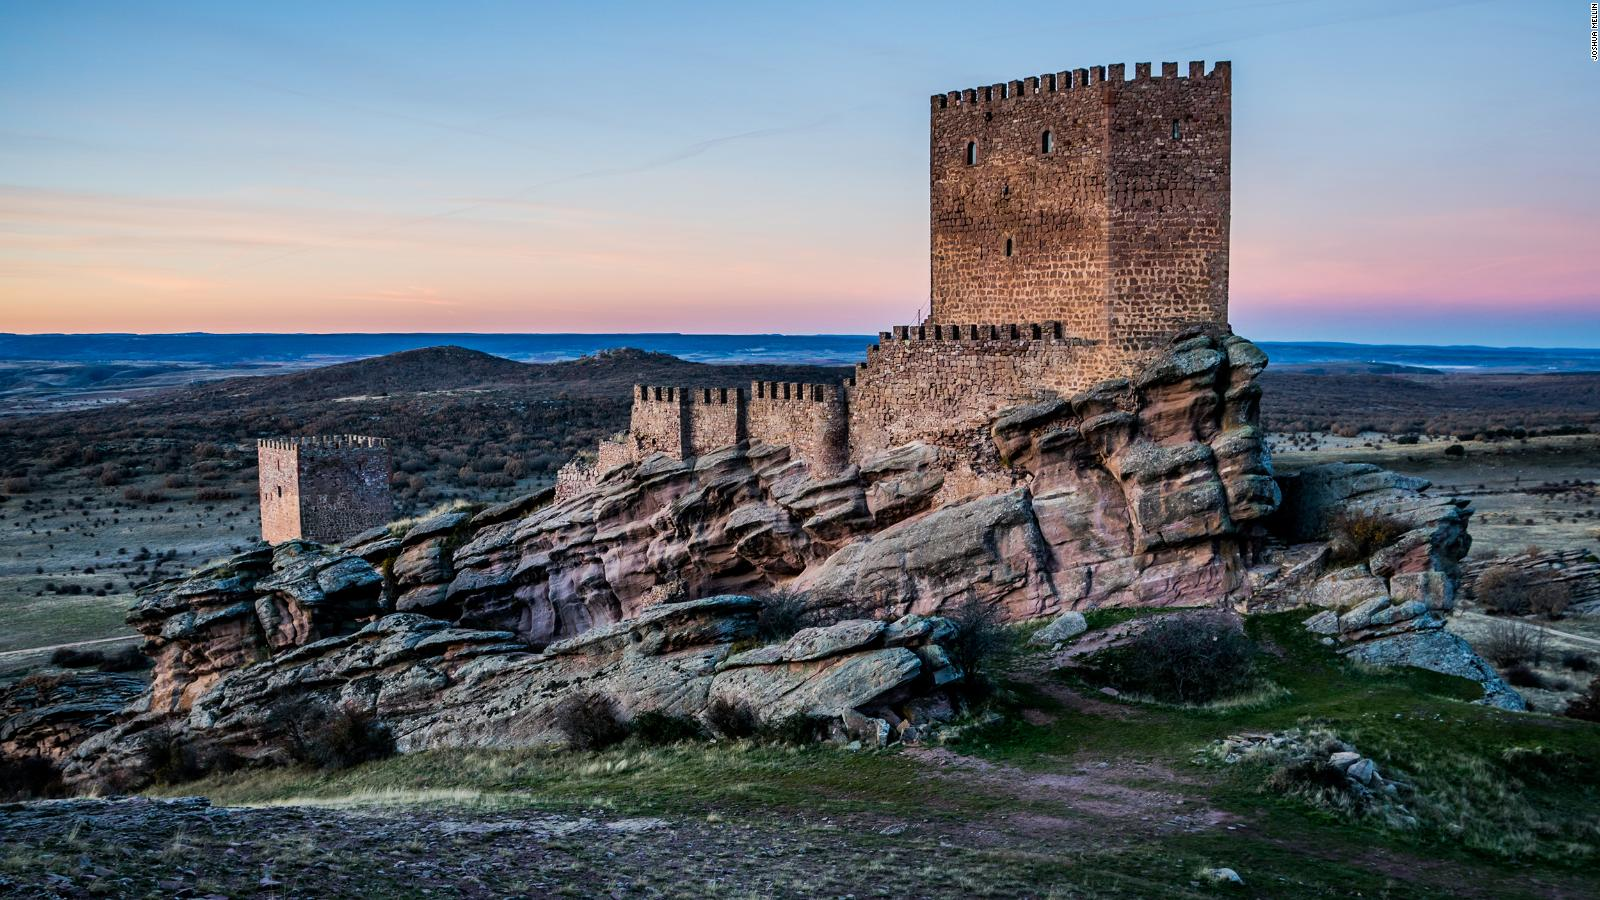 Game of Thrones' in Spain: Filming locations you'll love to visit